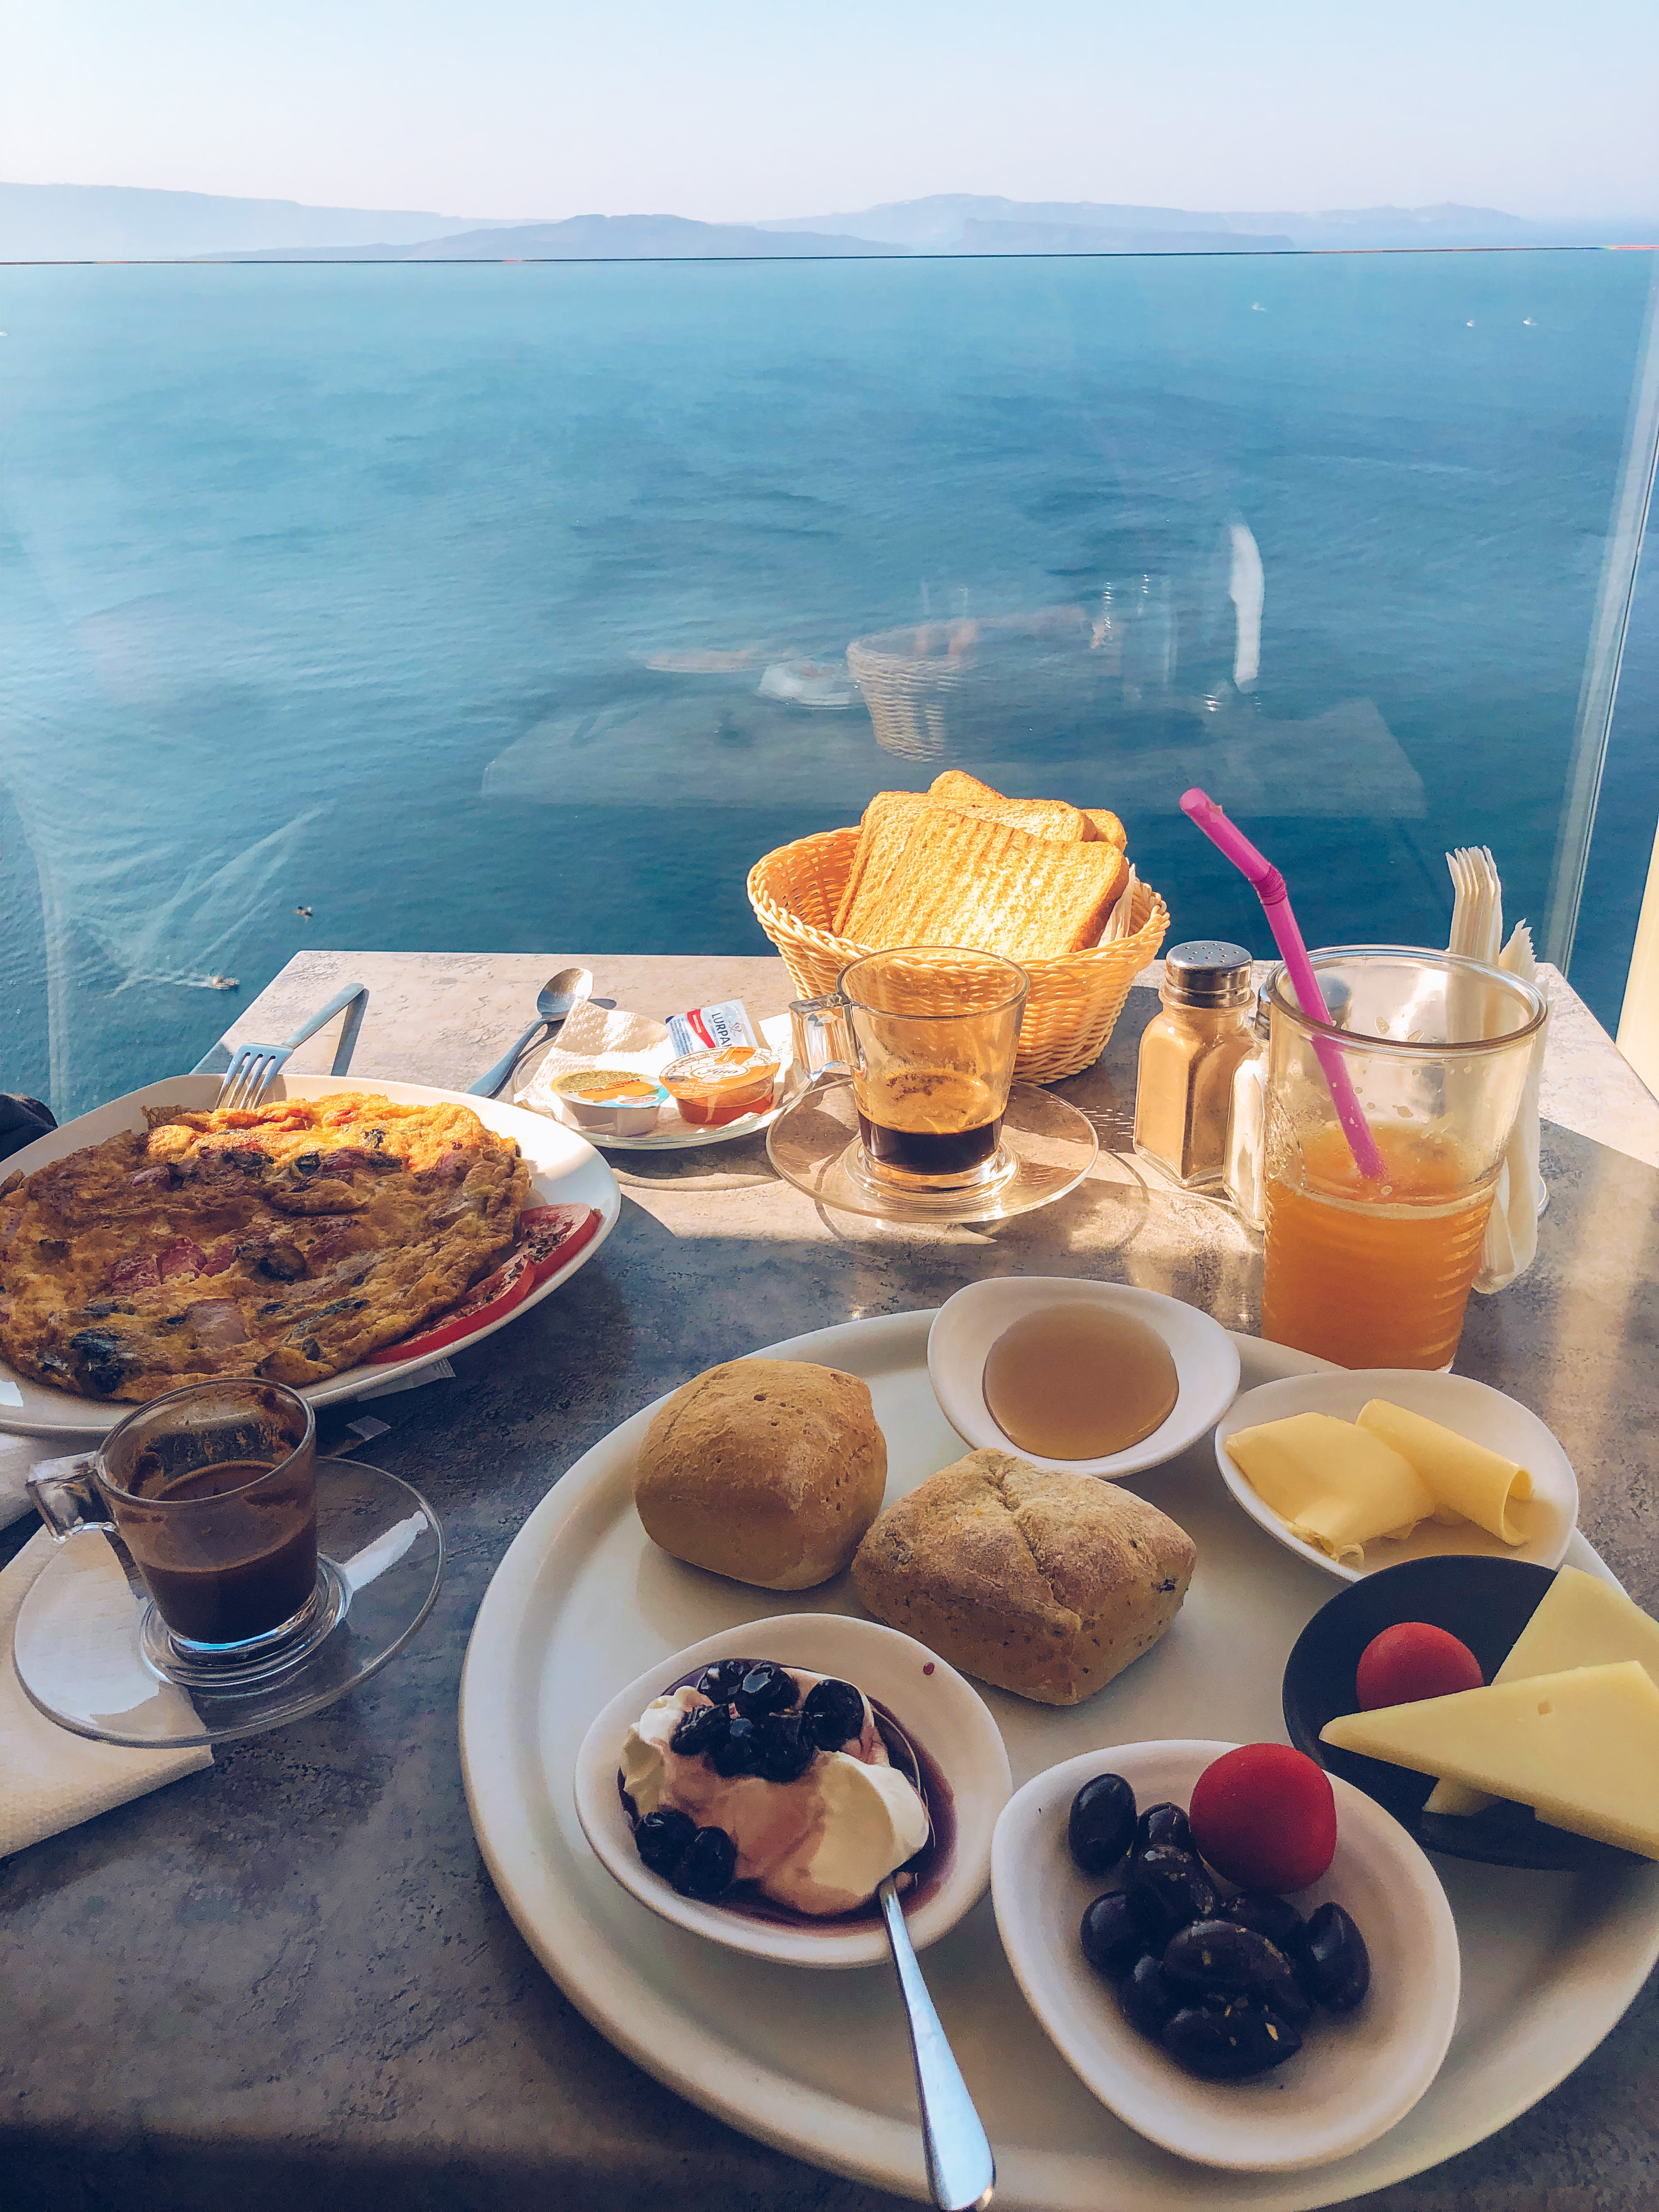 A table at Skiza Cafe with a traditional Greek breakfast, overlooking the caldera in Oia, Santorini.